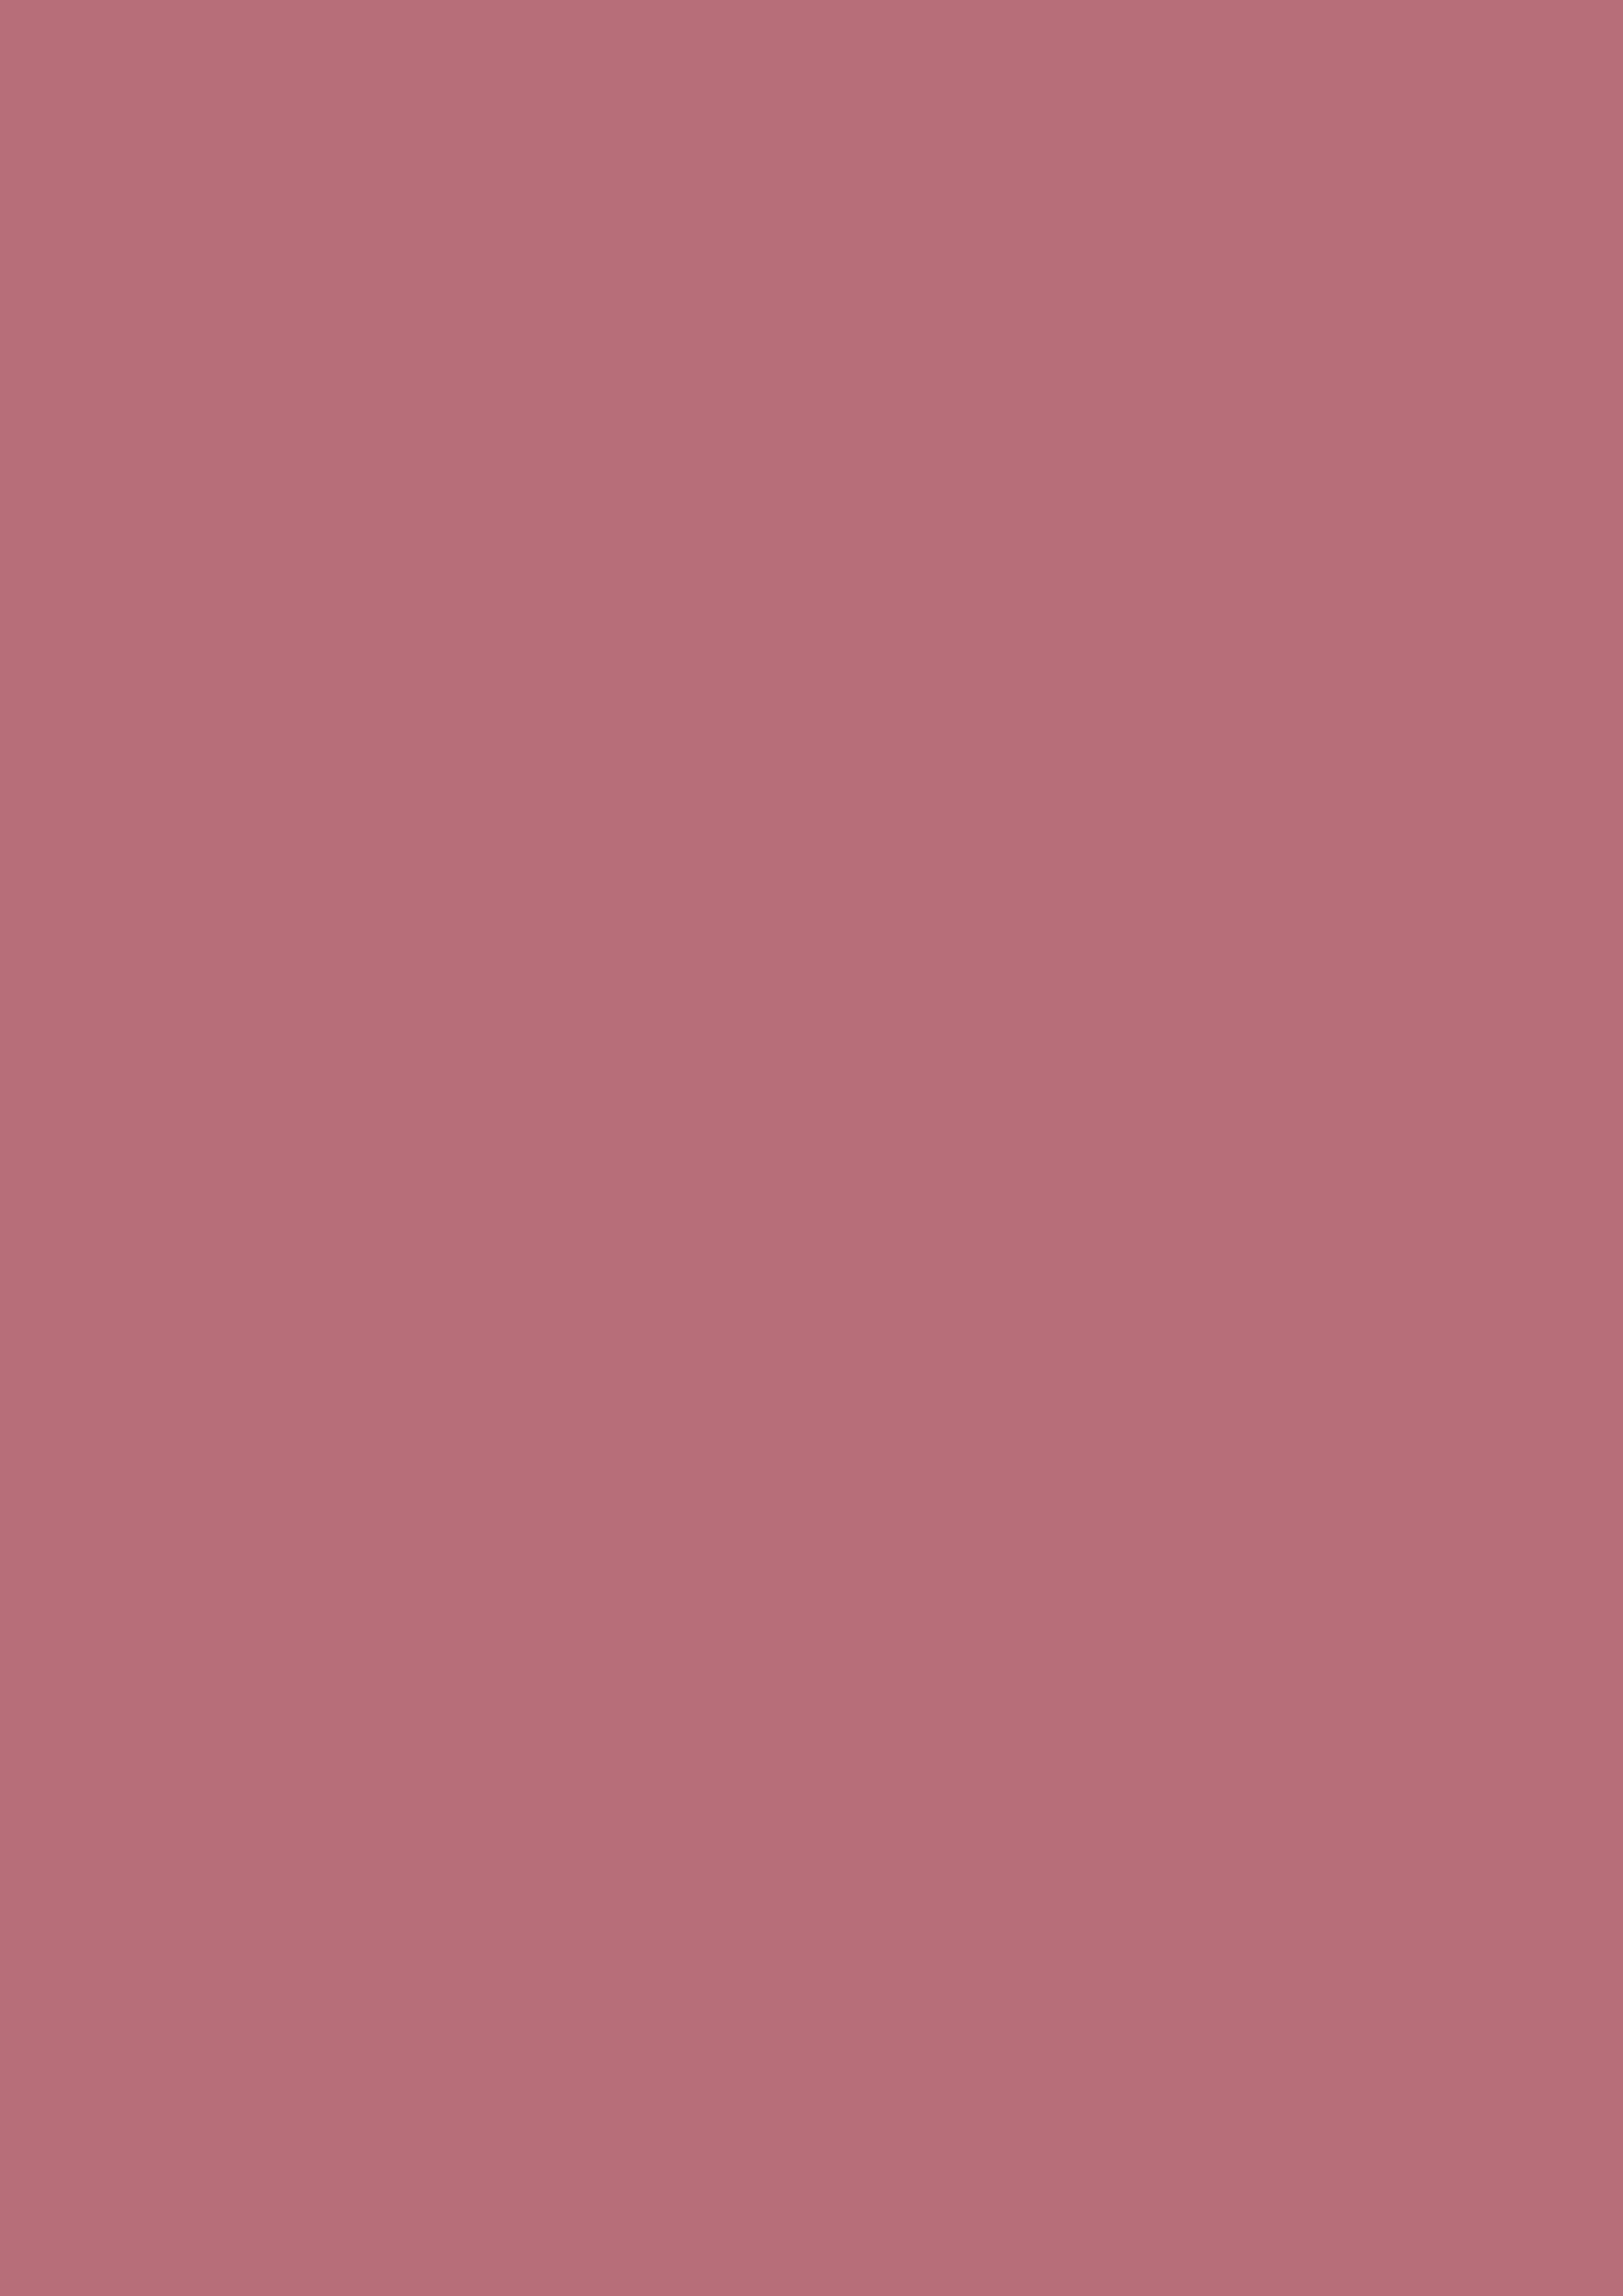 2480x3508 Rose Gold Solid Color Background